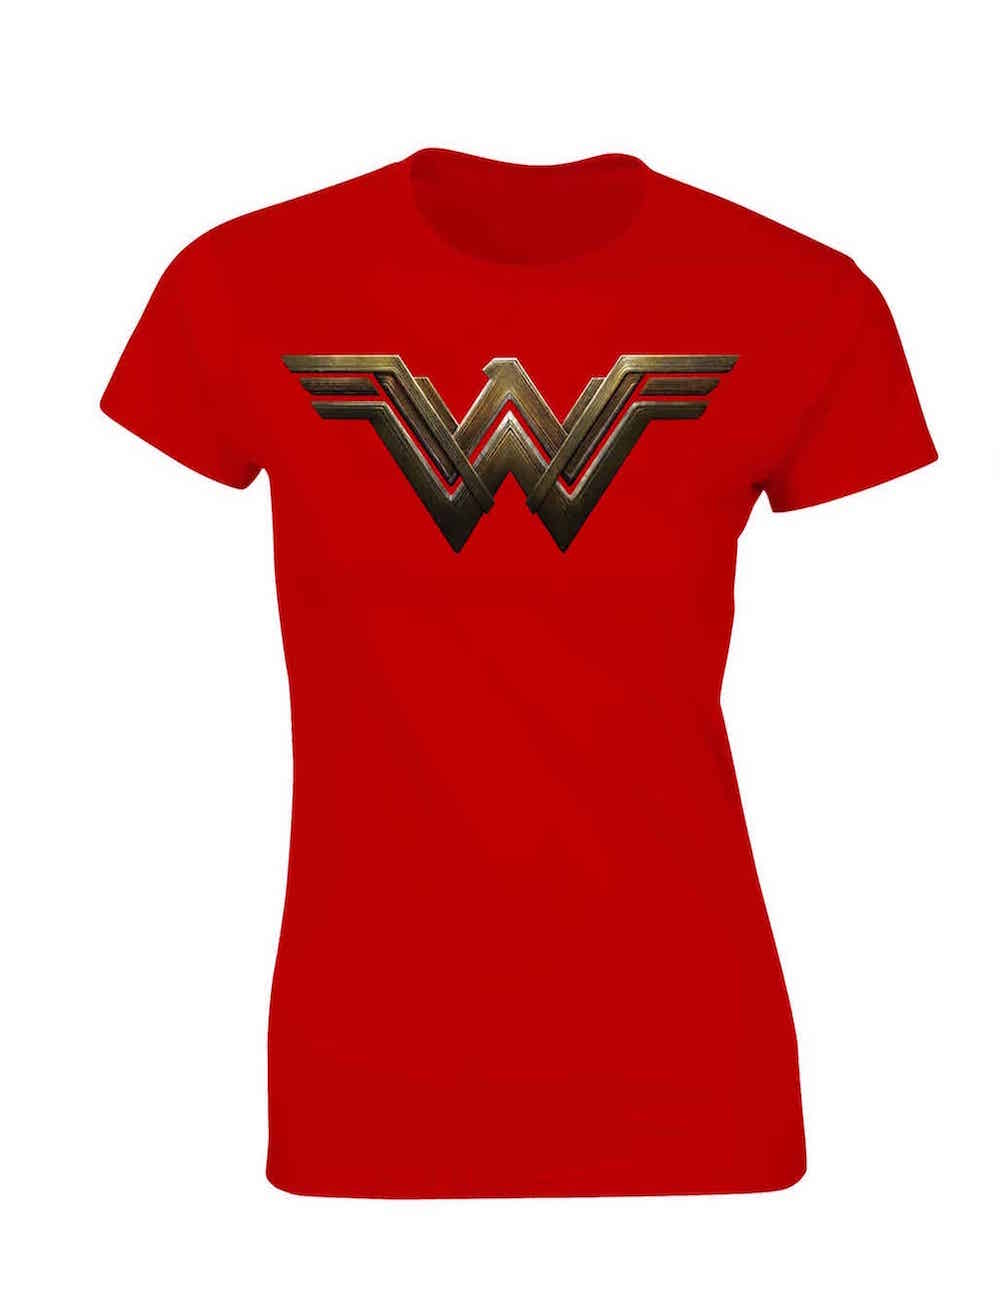 LOGO WONDER WOMAN CAMISETA ROJA CHICA T-M BATMAN VS SUPERMAN DC